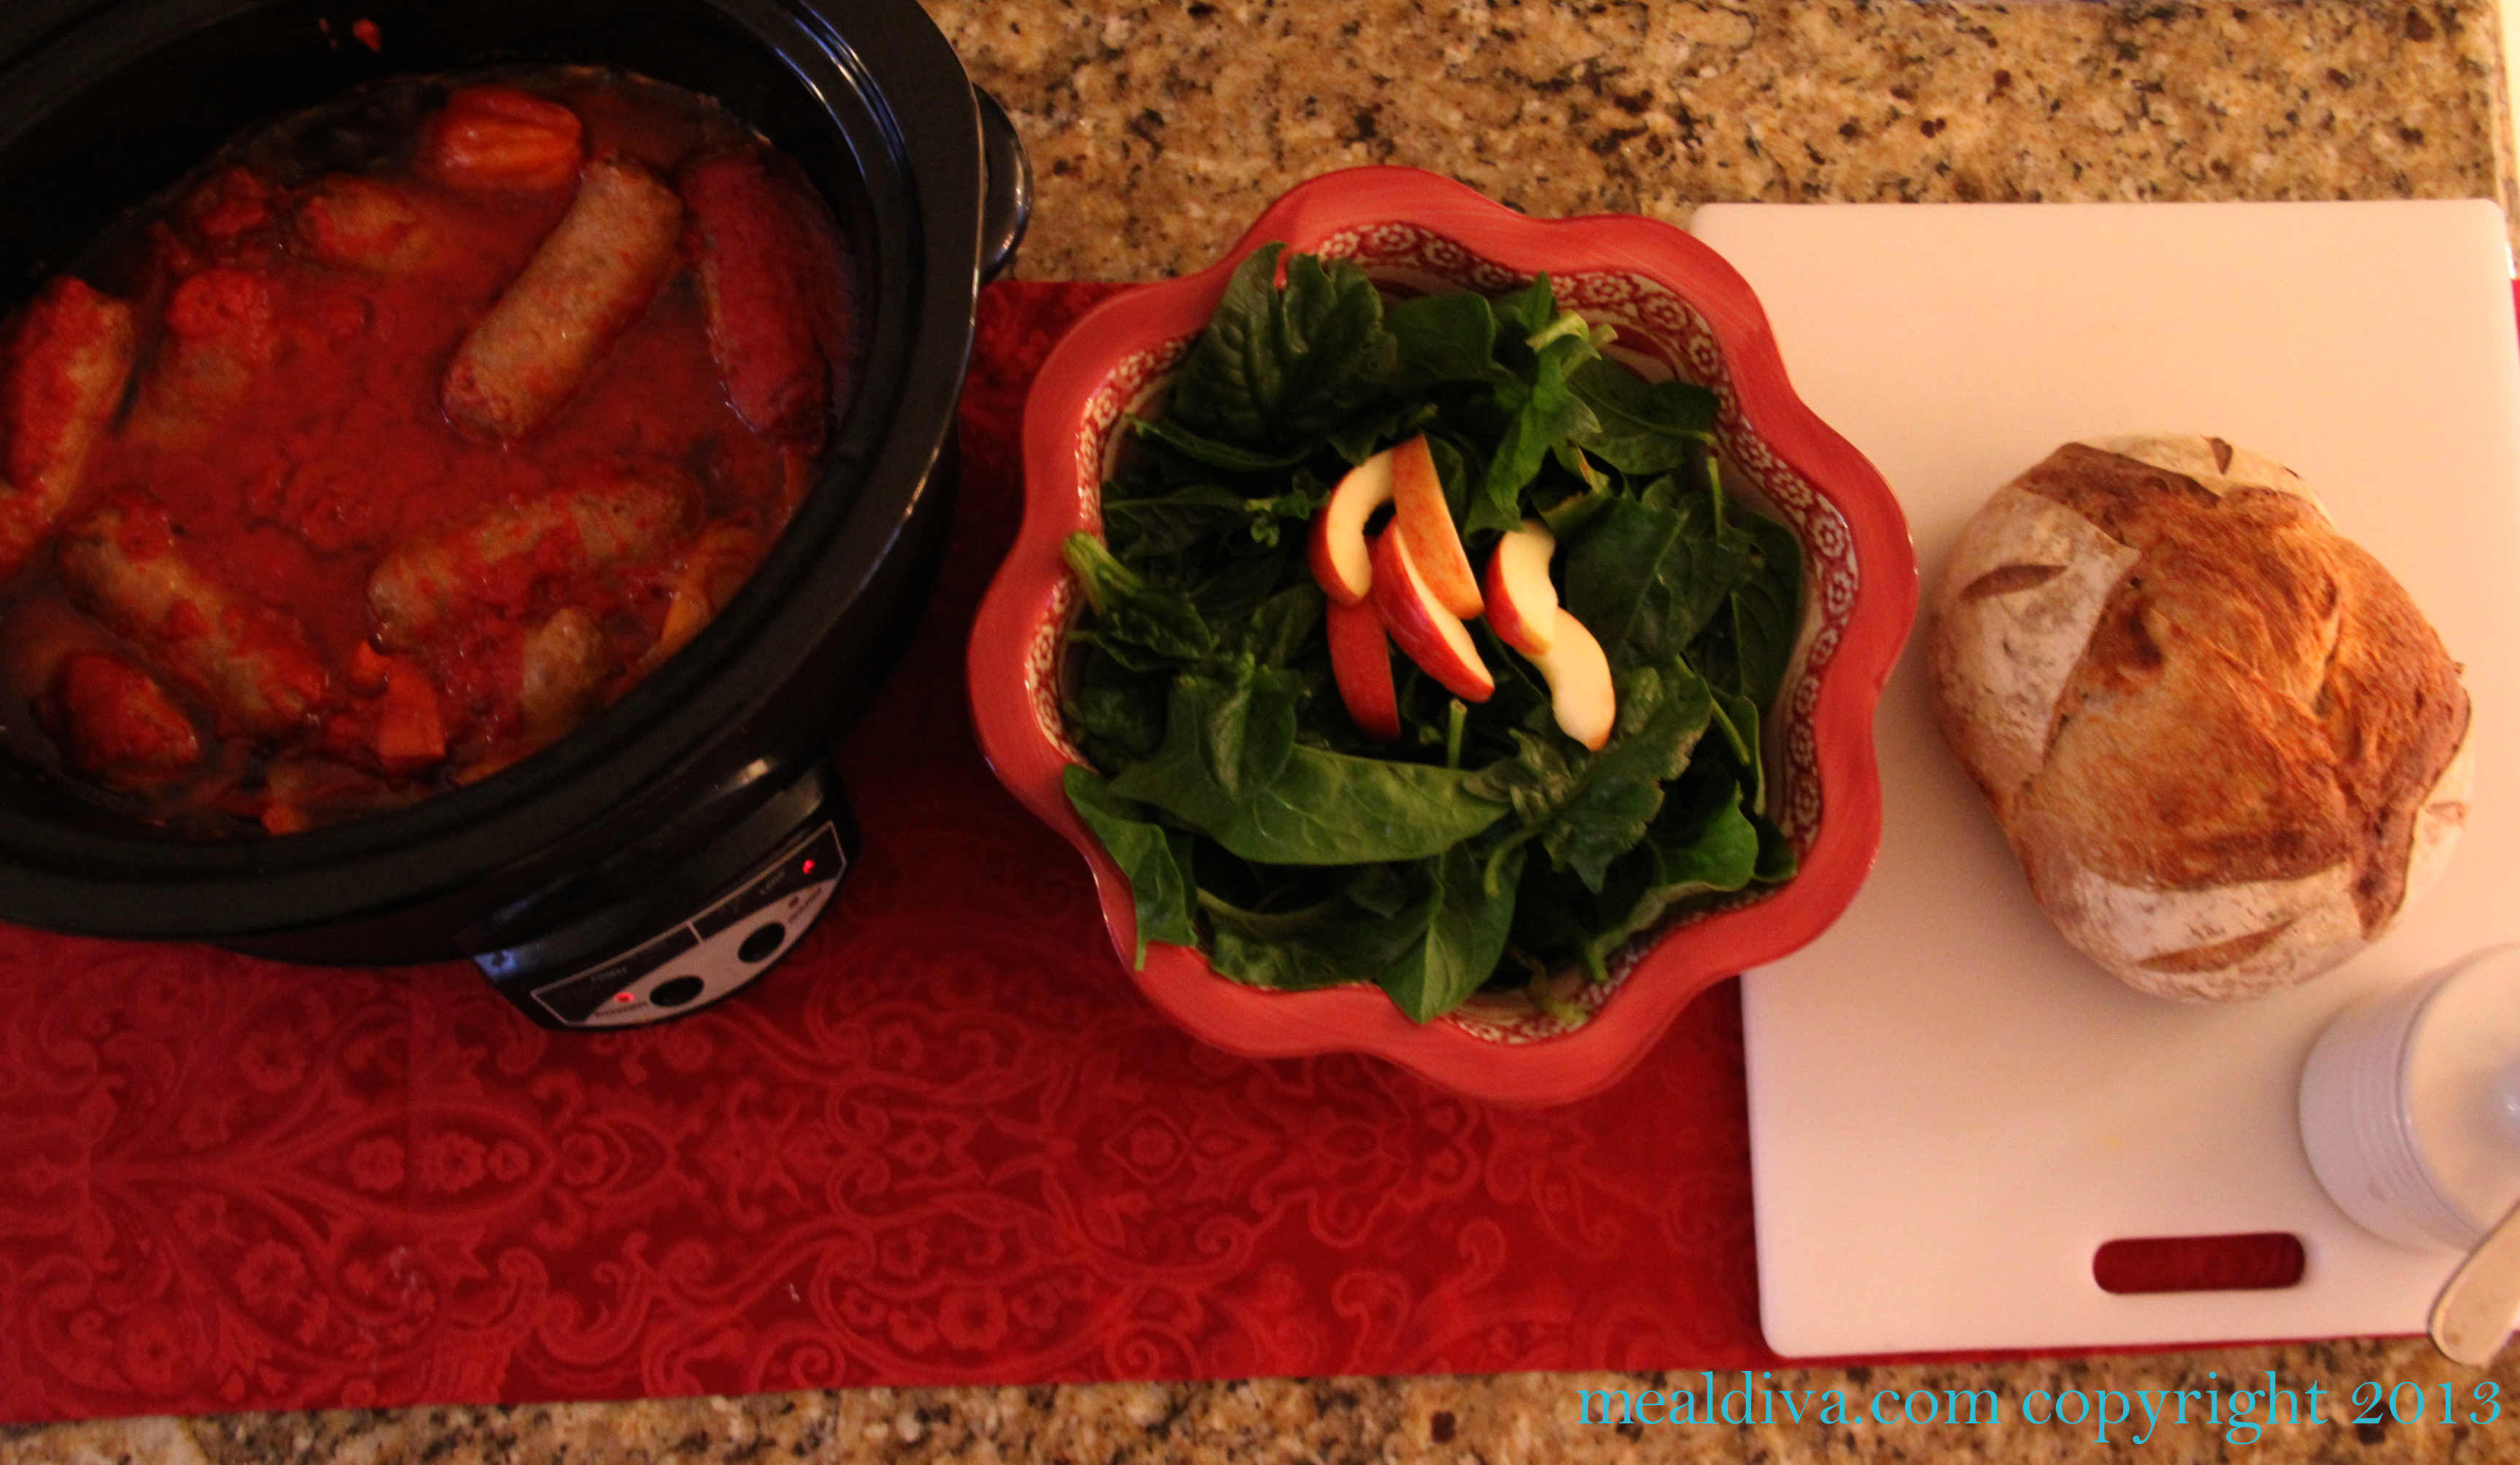 Crockpot Sausage & Peppers for Sunday Dinner